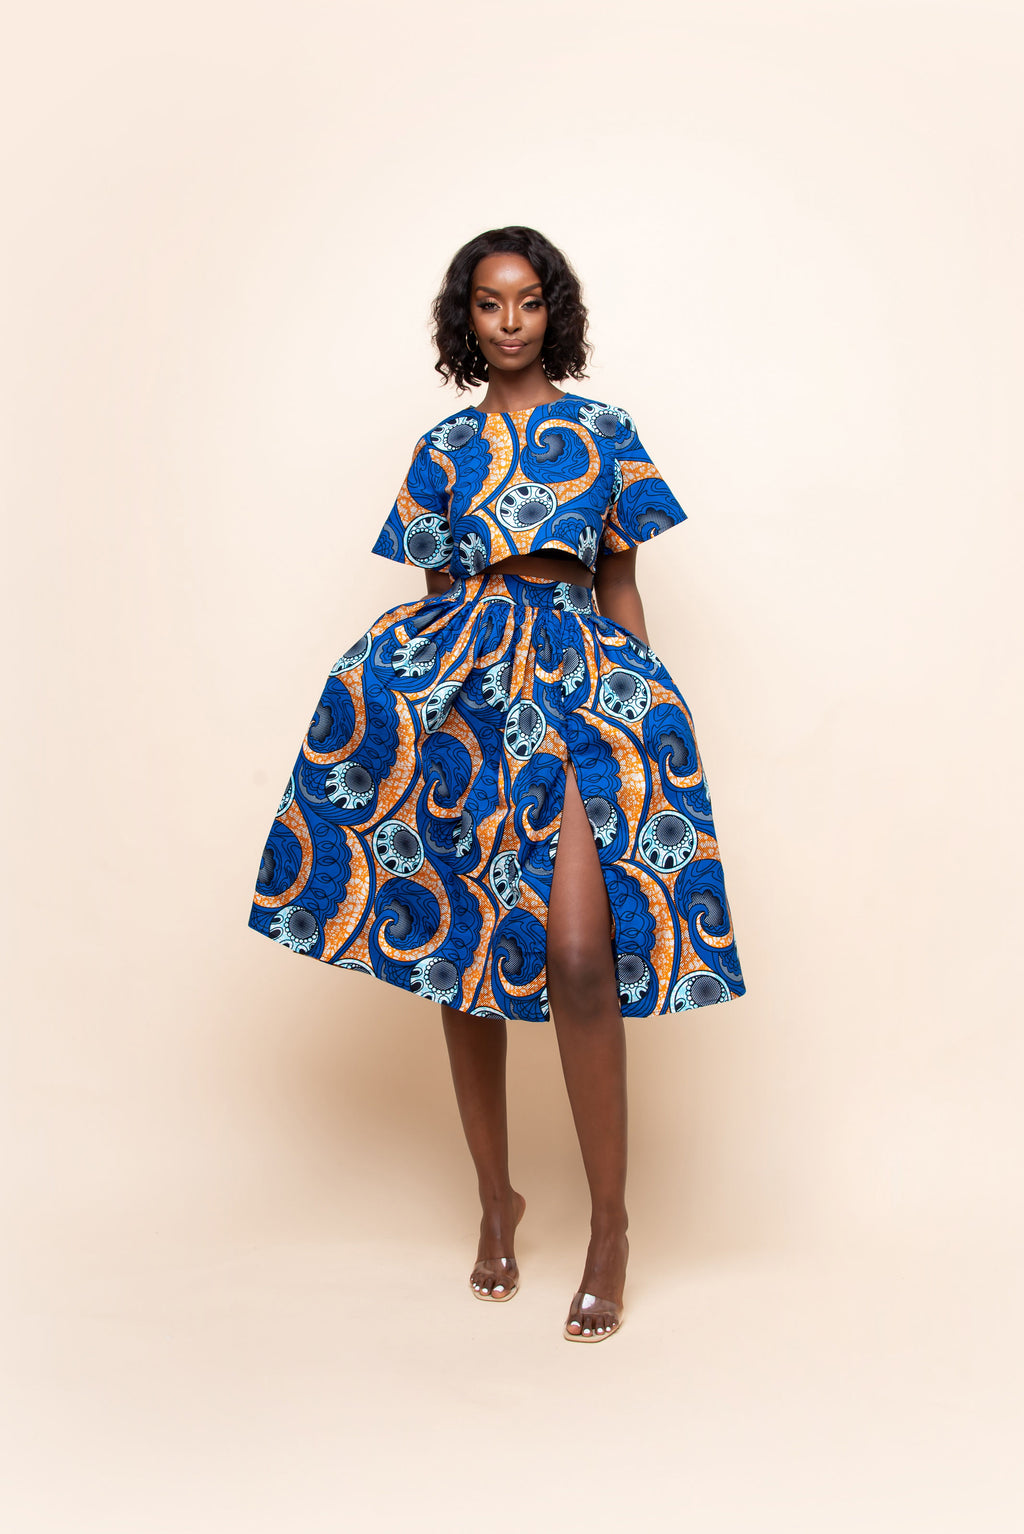 OYINDA One-sleeve Ruffle African Print Hi-low Dress